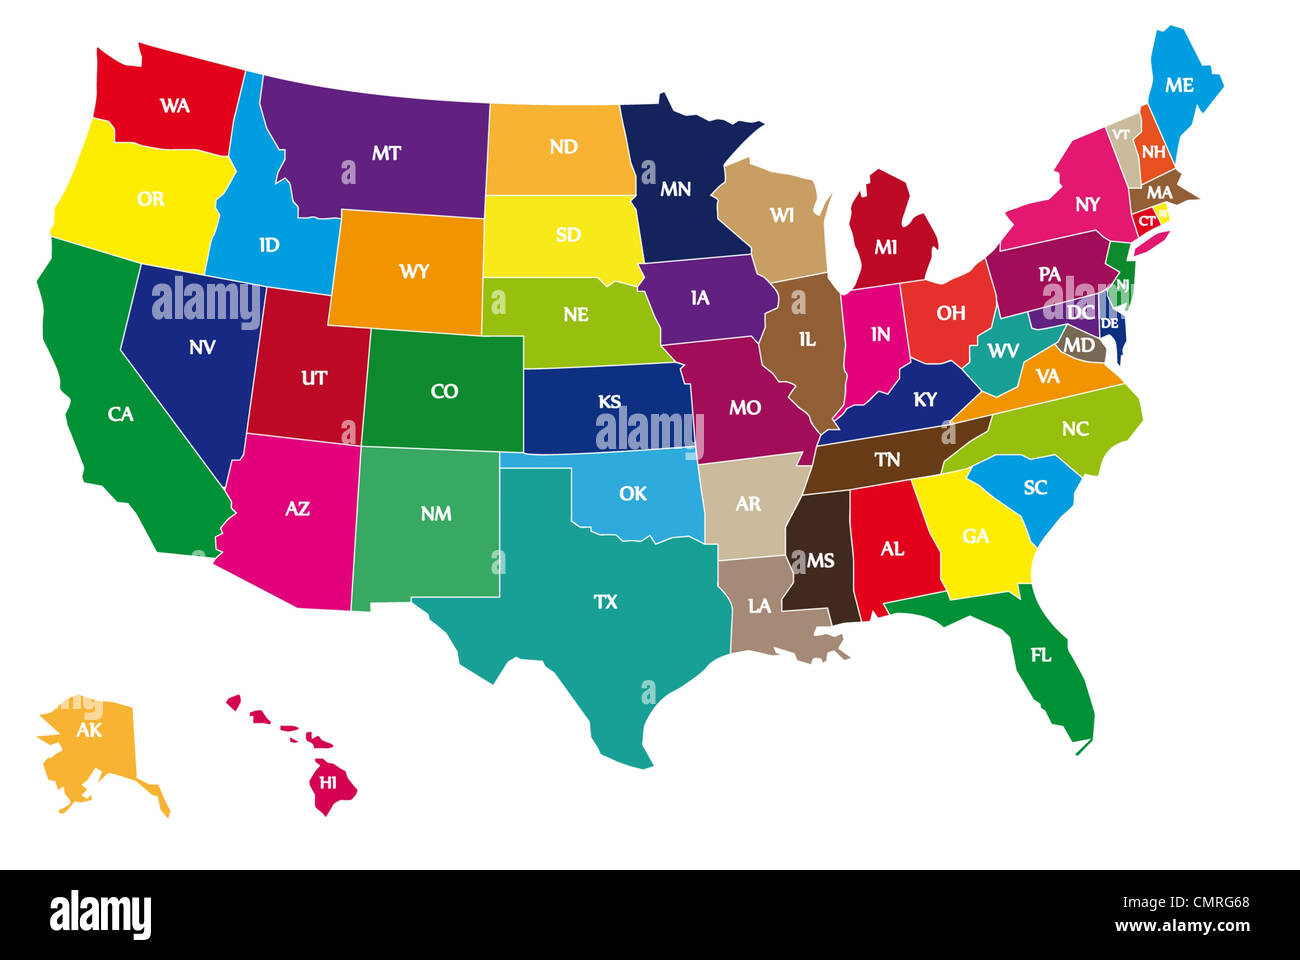 Multicolor Bordering Geographical Map of USA with Bordering Lines ...